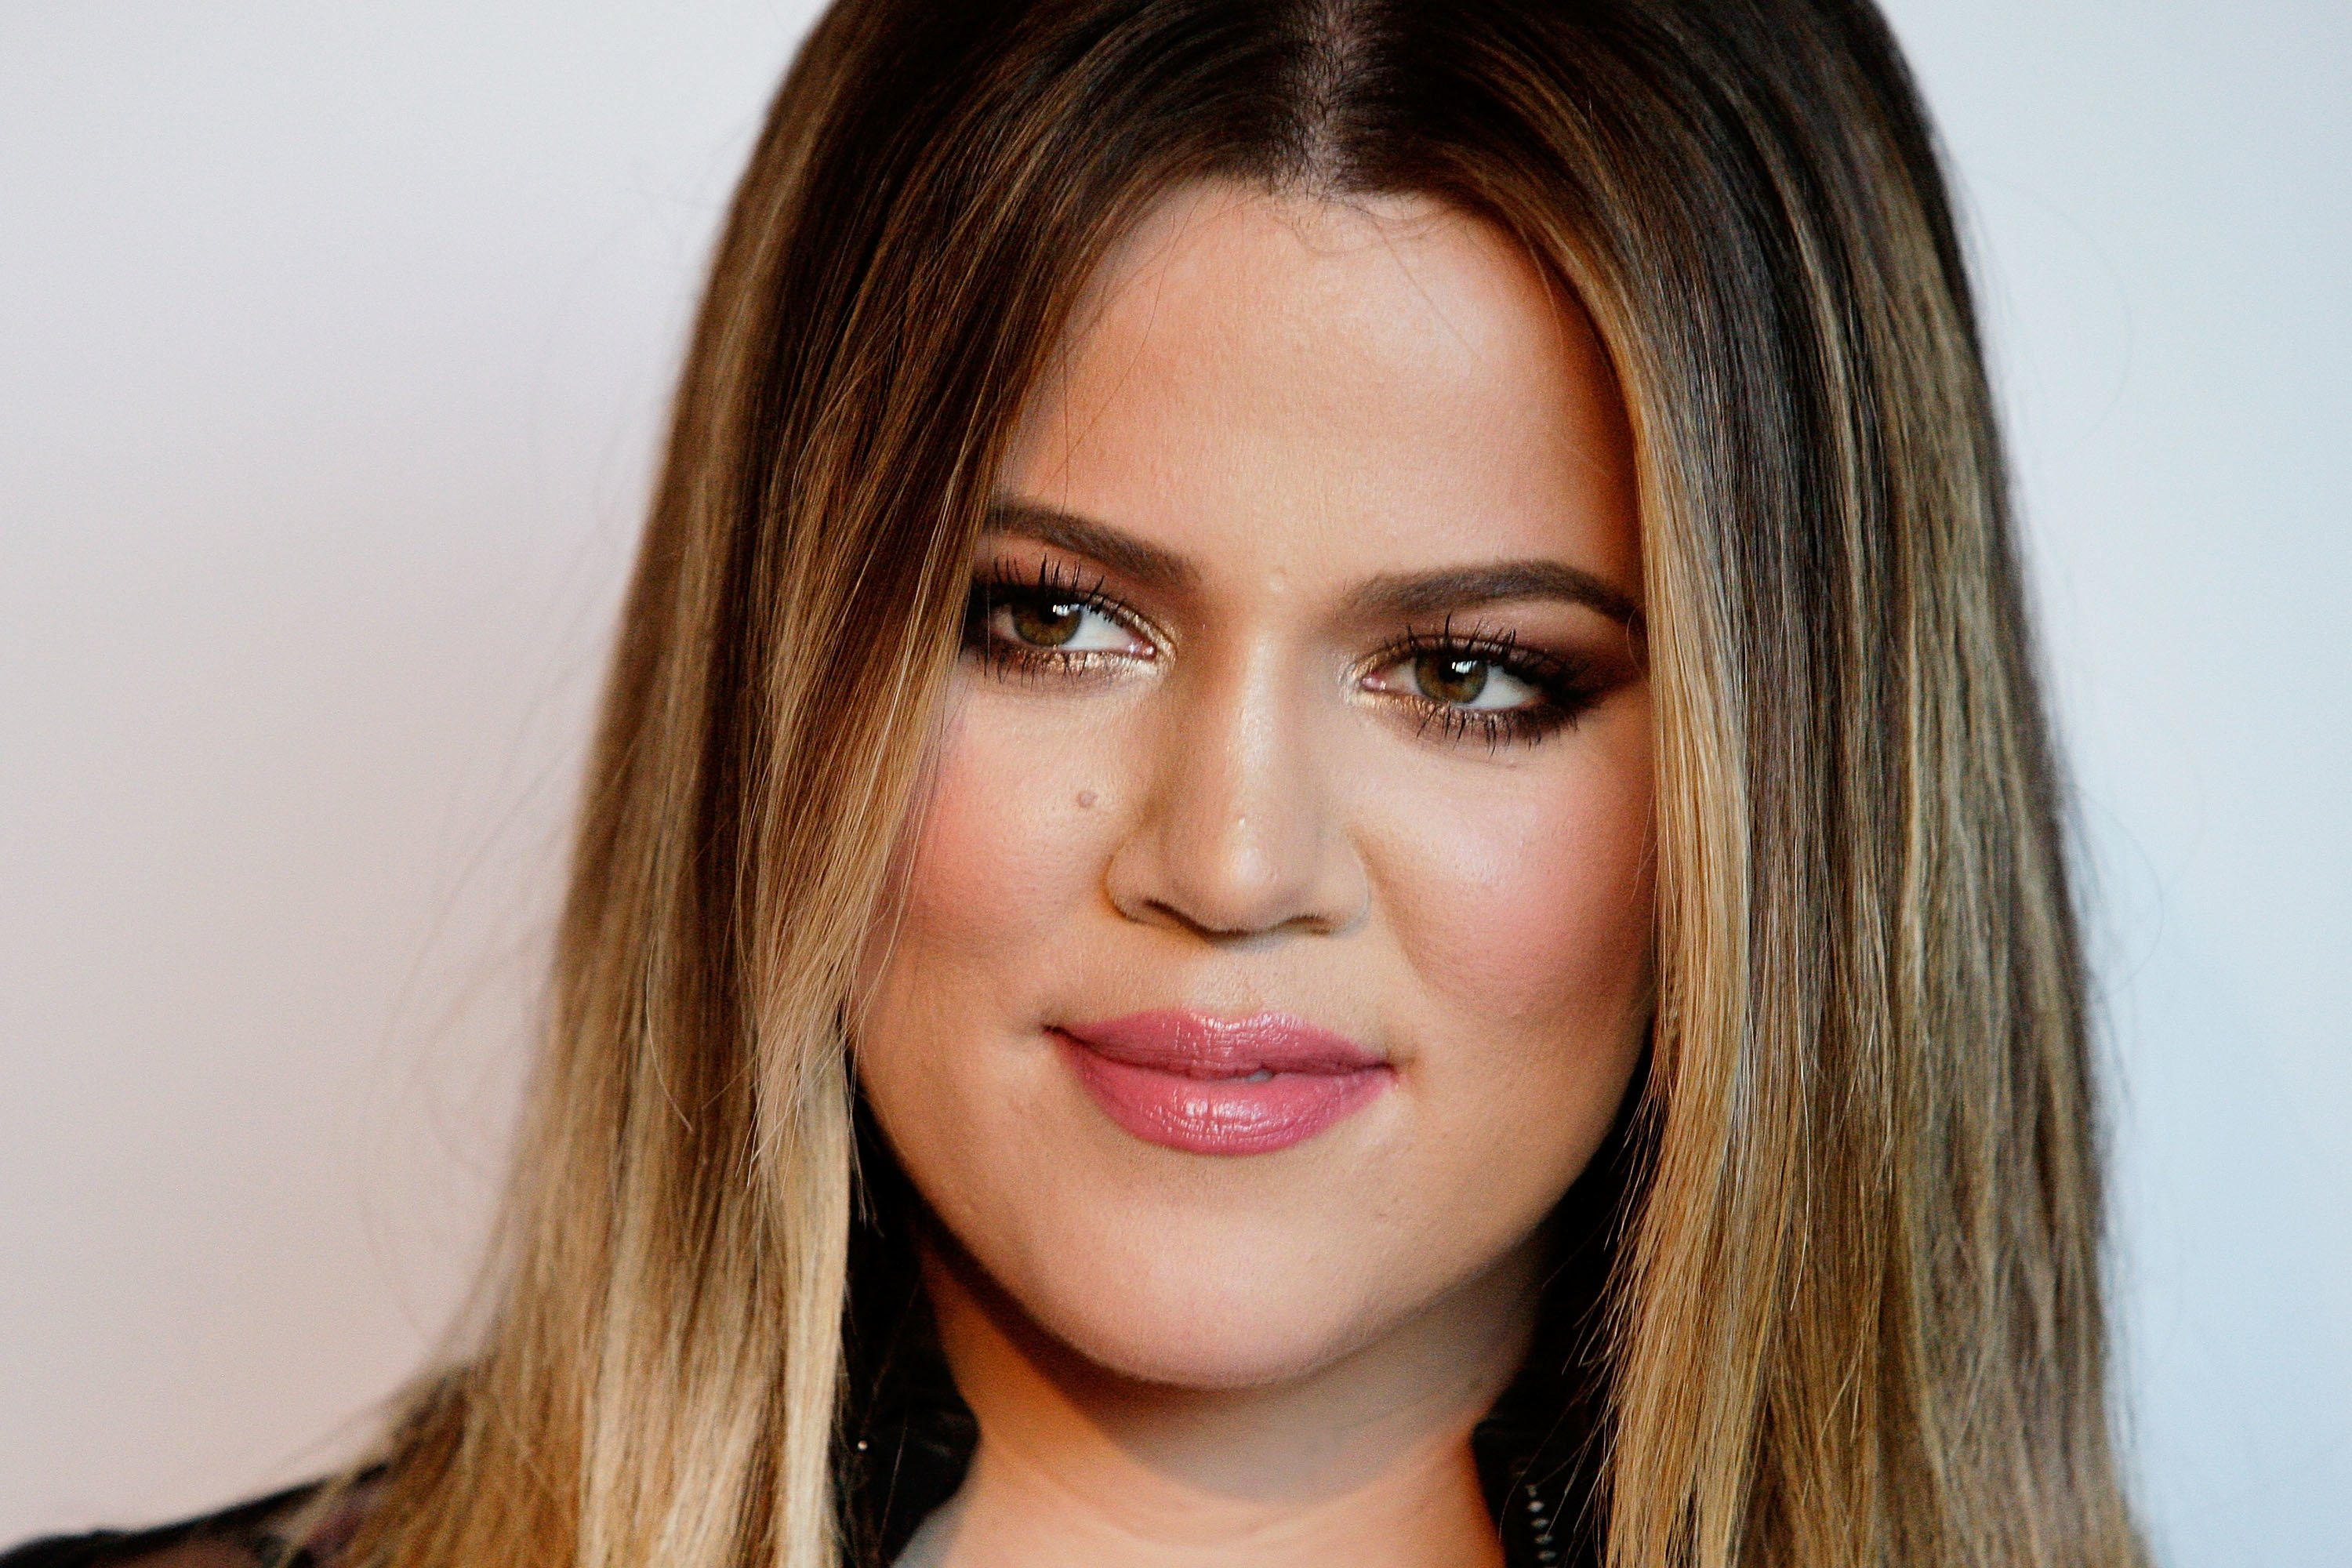 Khloe Kardashian at the Kardashian Kollection cocktail party in 2013 in Sydney, Australia | Source: Getty Images